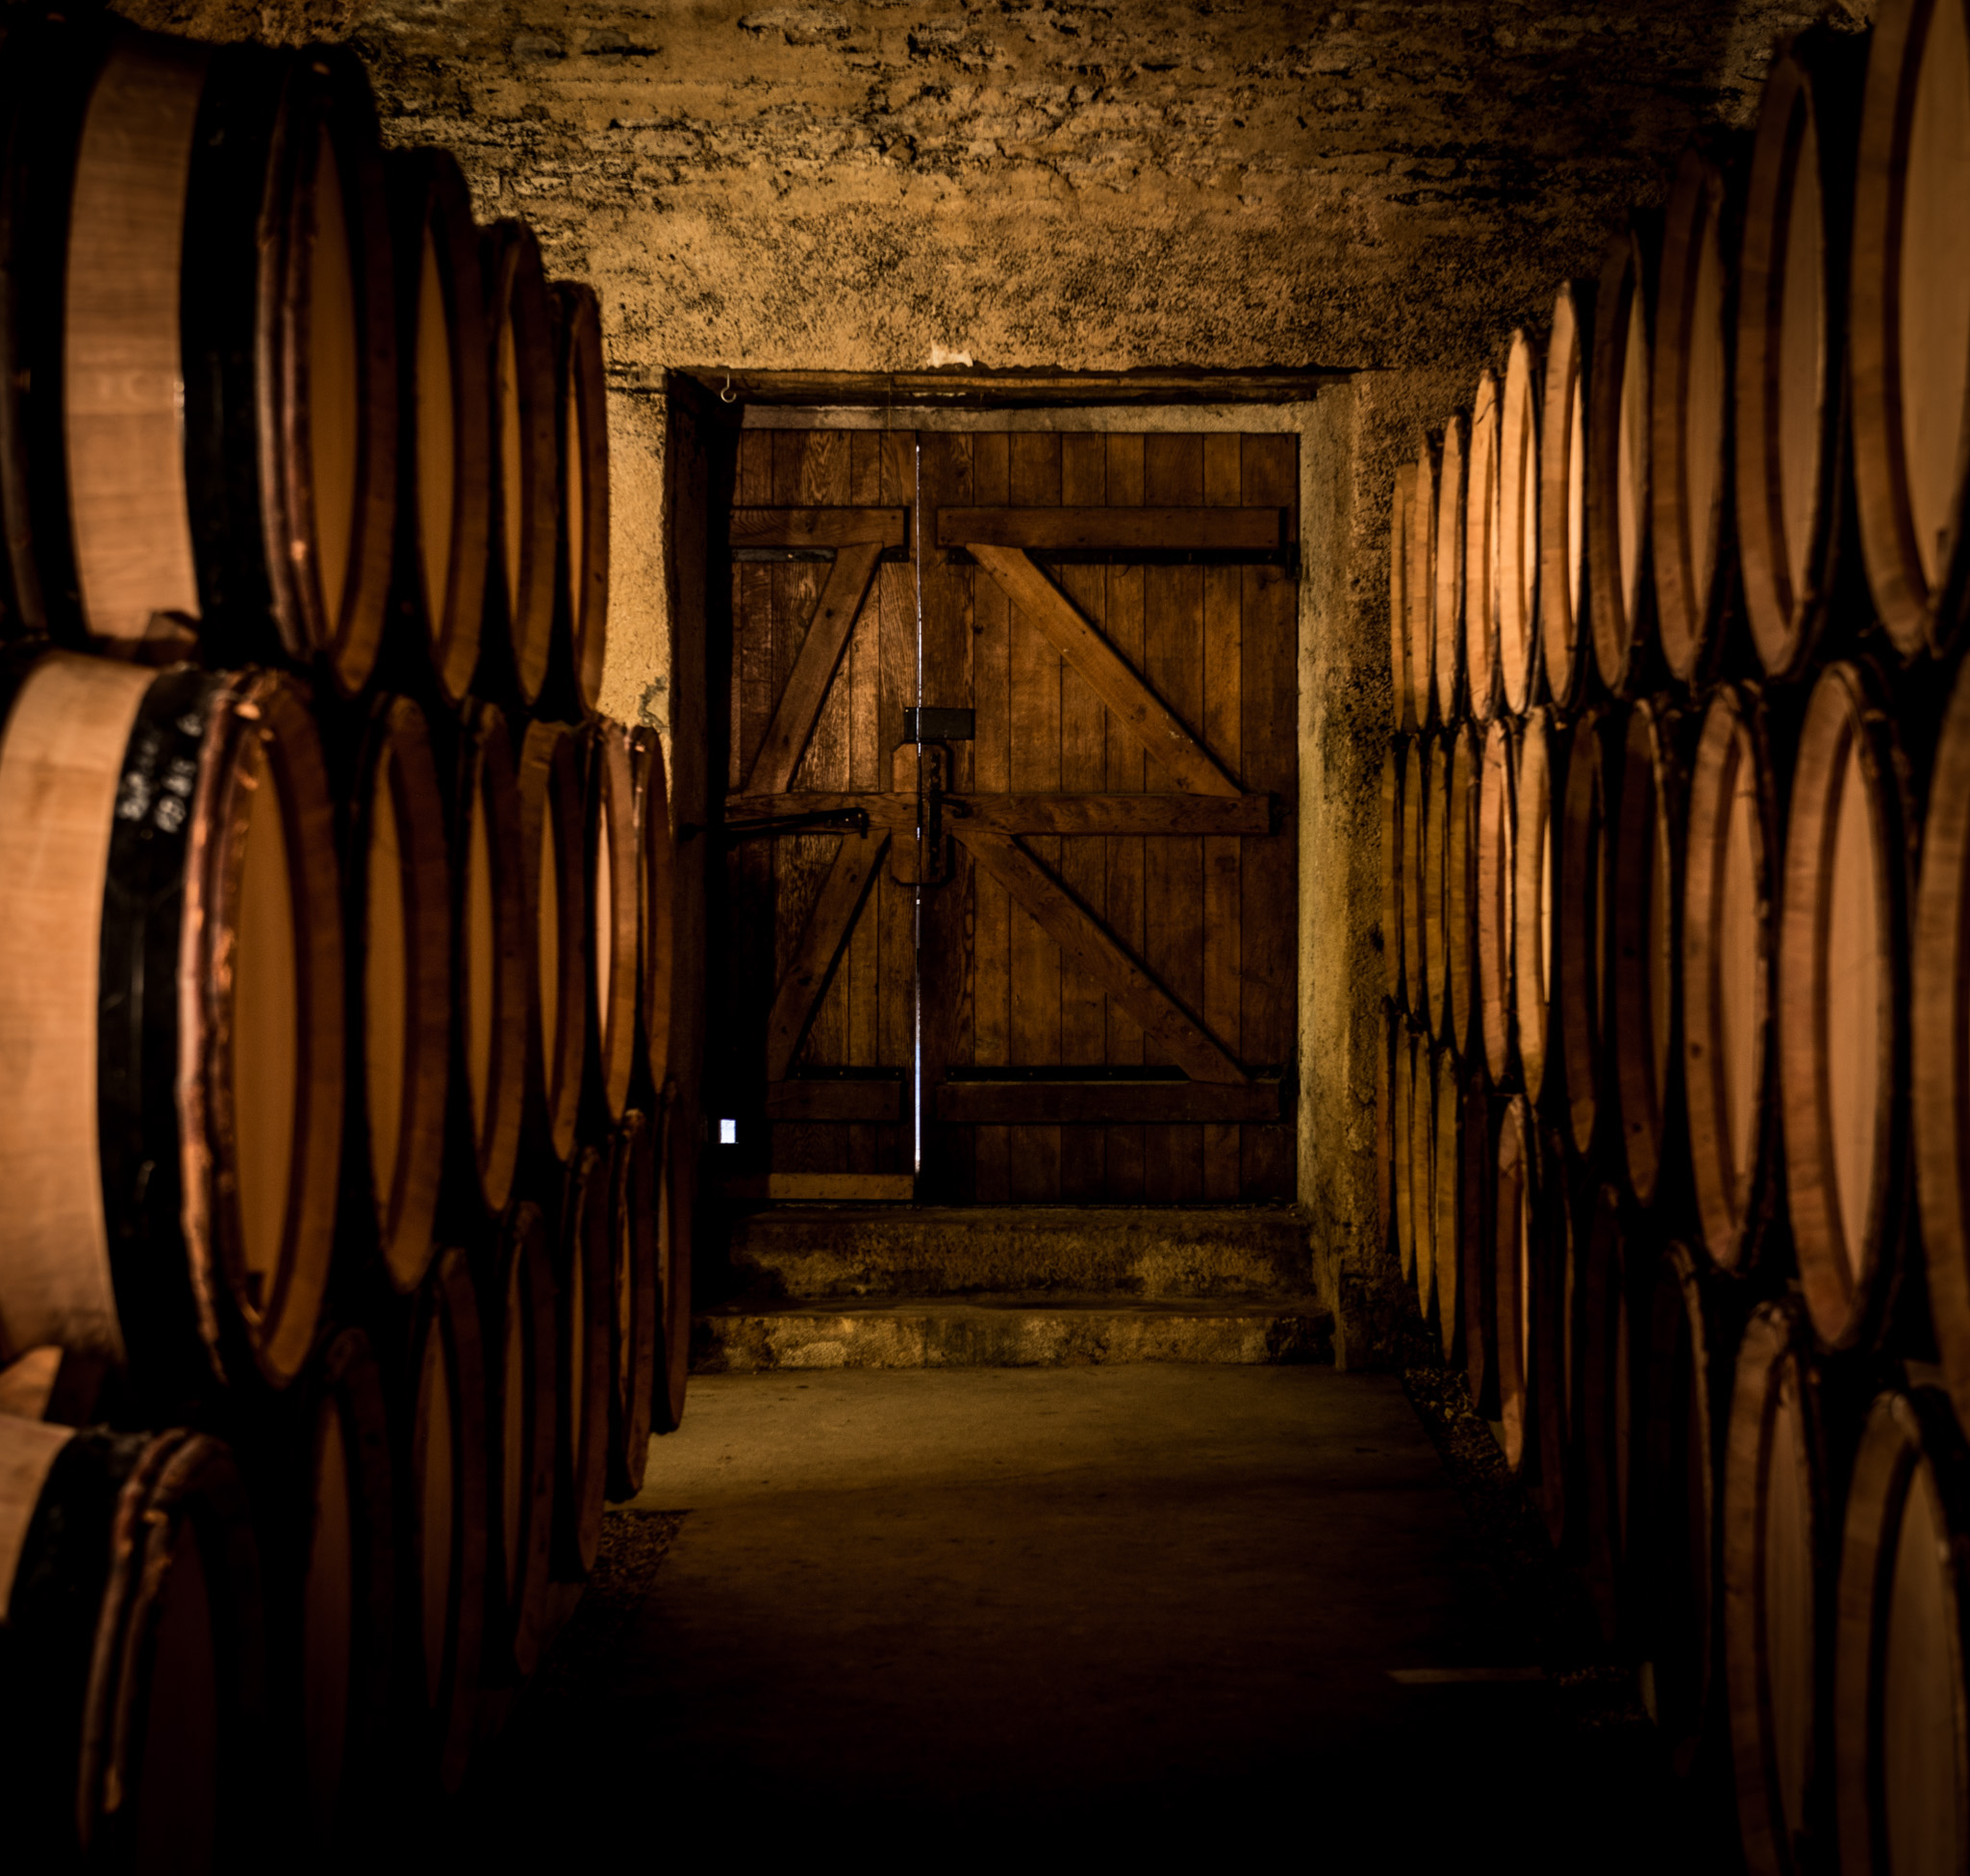 Burgundy : Cote de Beaune : Beaune : In the cellar at Domaine de Bellene